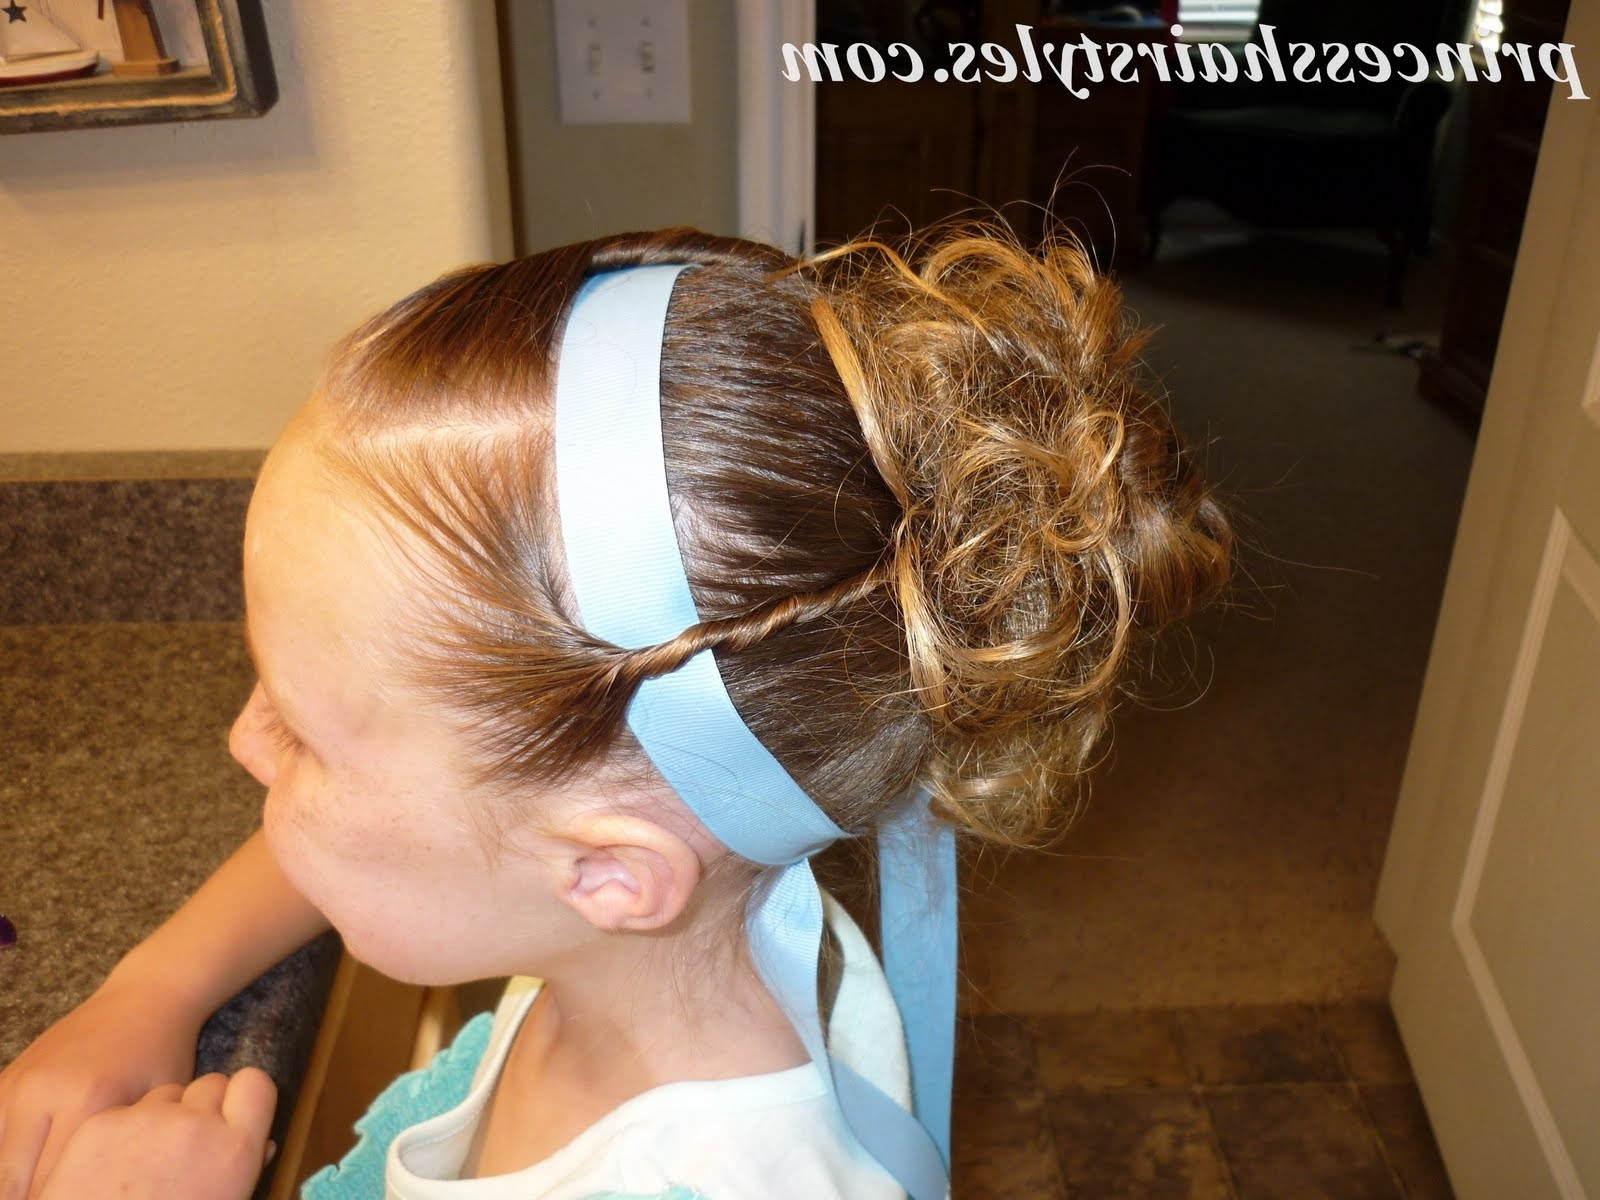 Hairstyles For Dance Competition, Recital – Hairstyles For Girls Pertaining To Current Braided Hairstyles For Dance Recitals (View 11 of 15)